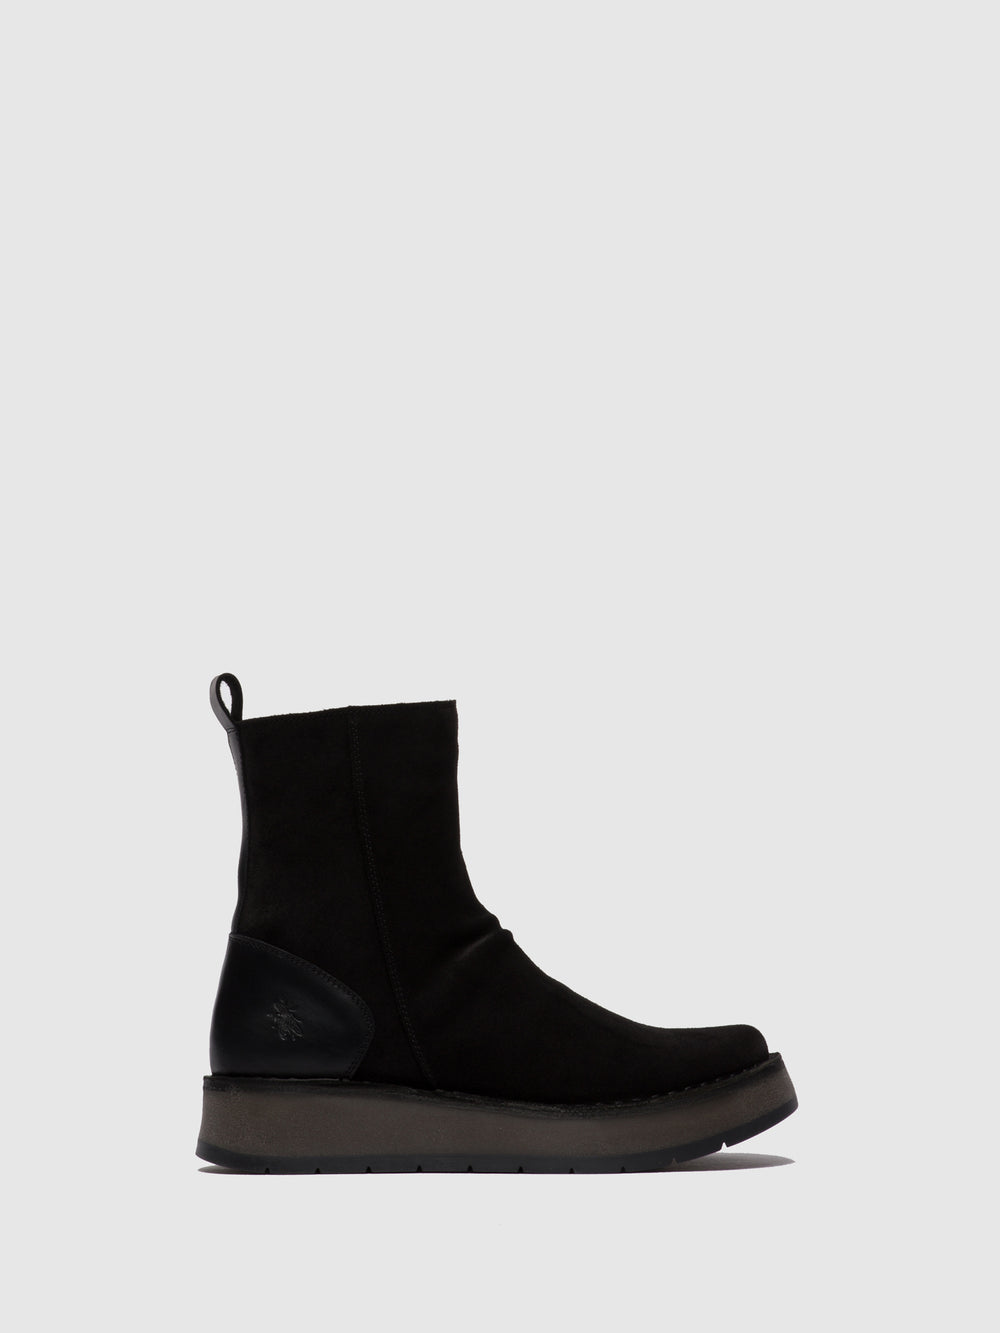 Zip Up Ankle Boots RENO053FLY OILSUEDE/RUG BLACK